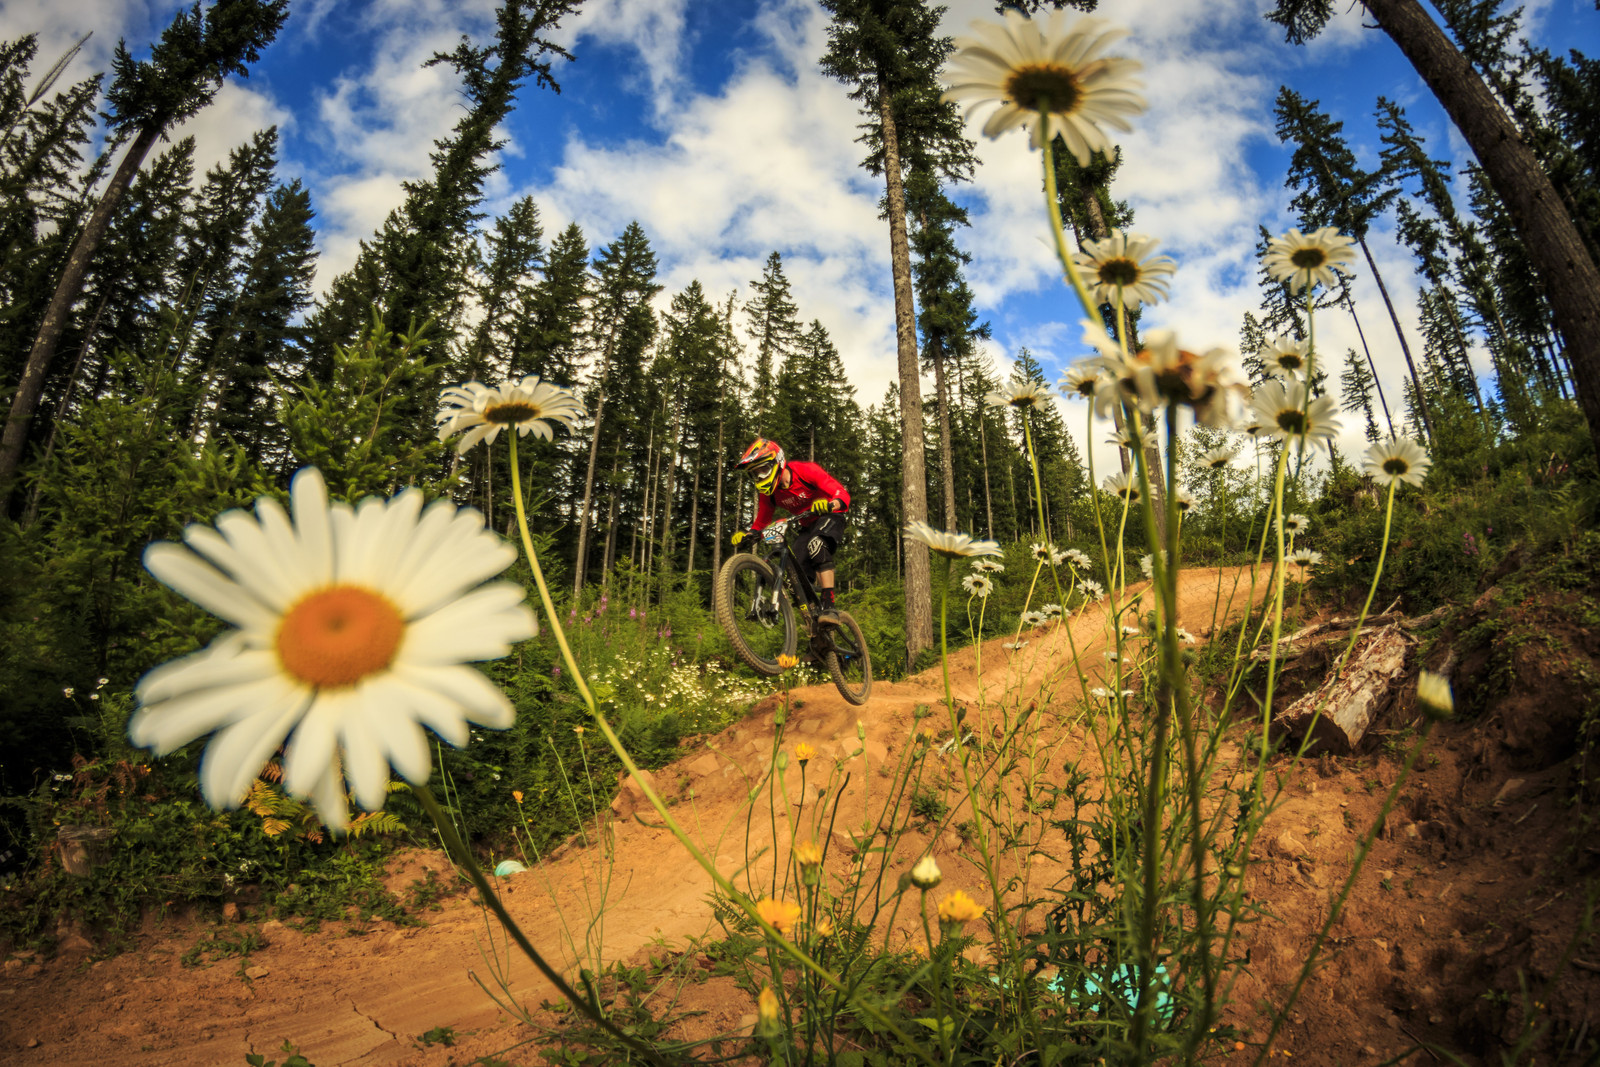 Brandon Porter, Oregon Enduro, Cold Creek - 2014 Oregon Enduro, Cold Creek - Mountain Biking Pictures - Vital MTB